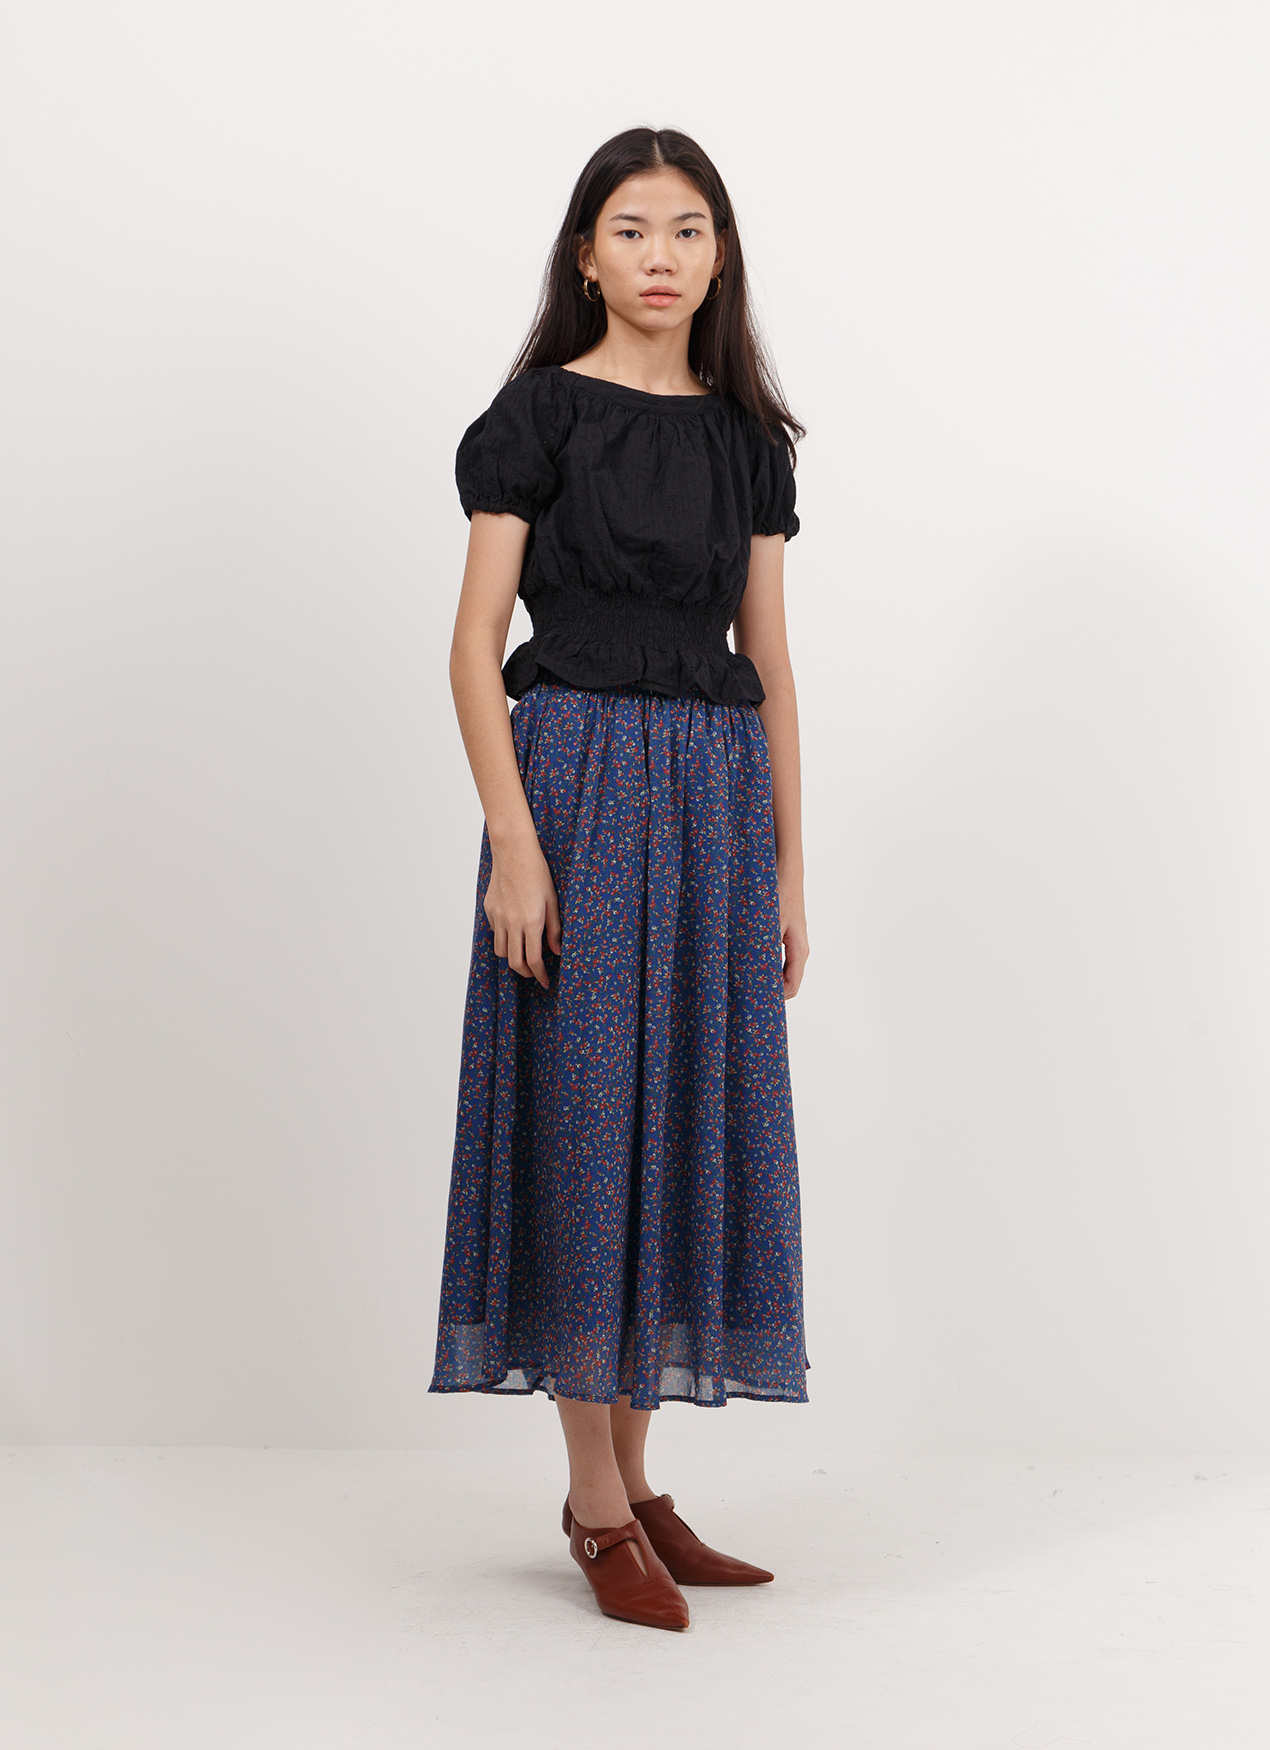 Earth, Music & Ecology Sumiko Top - Black